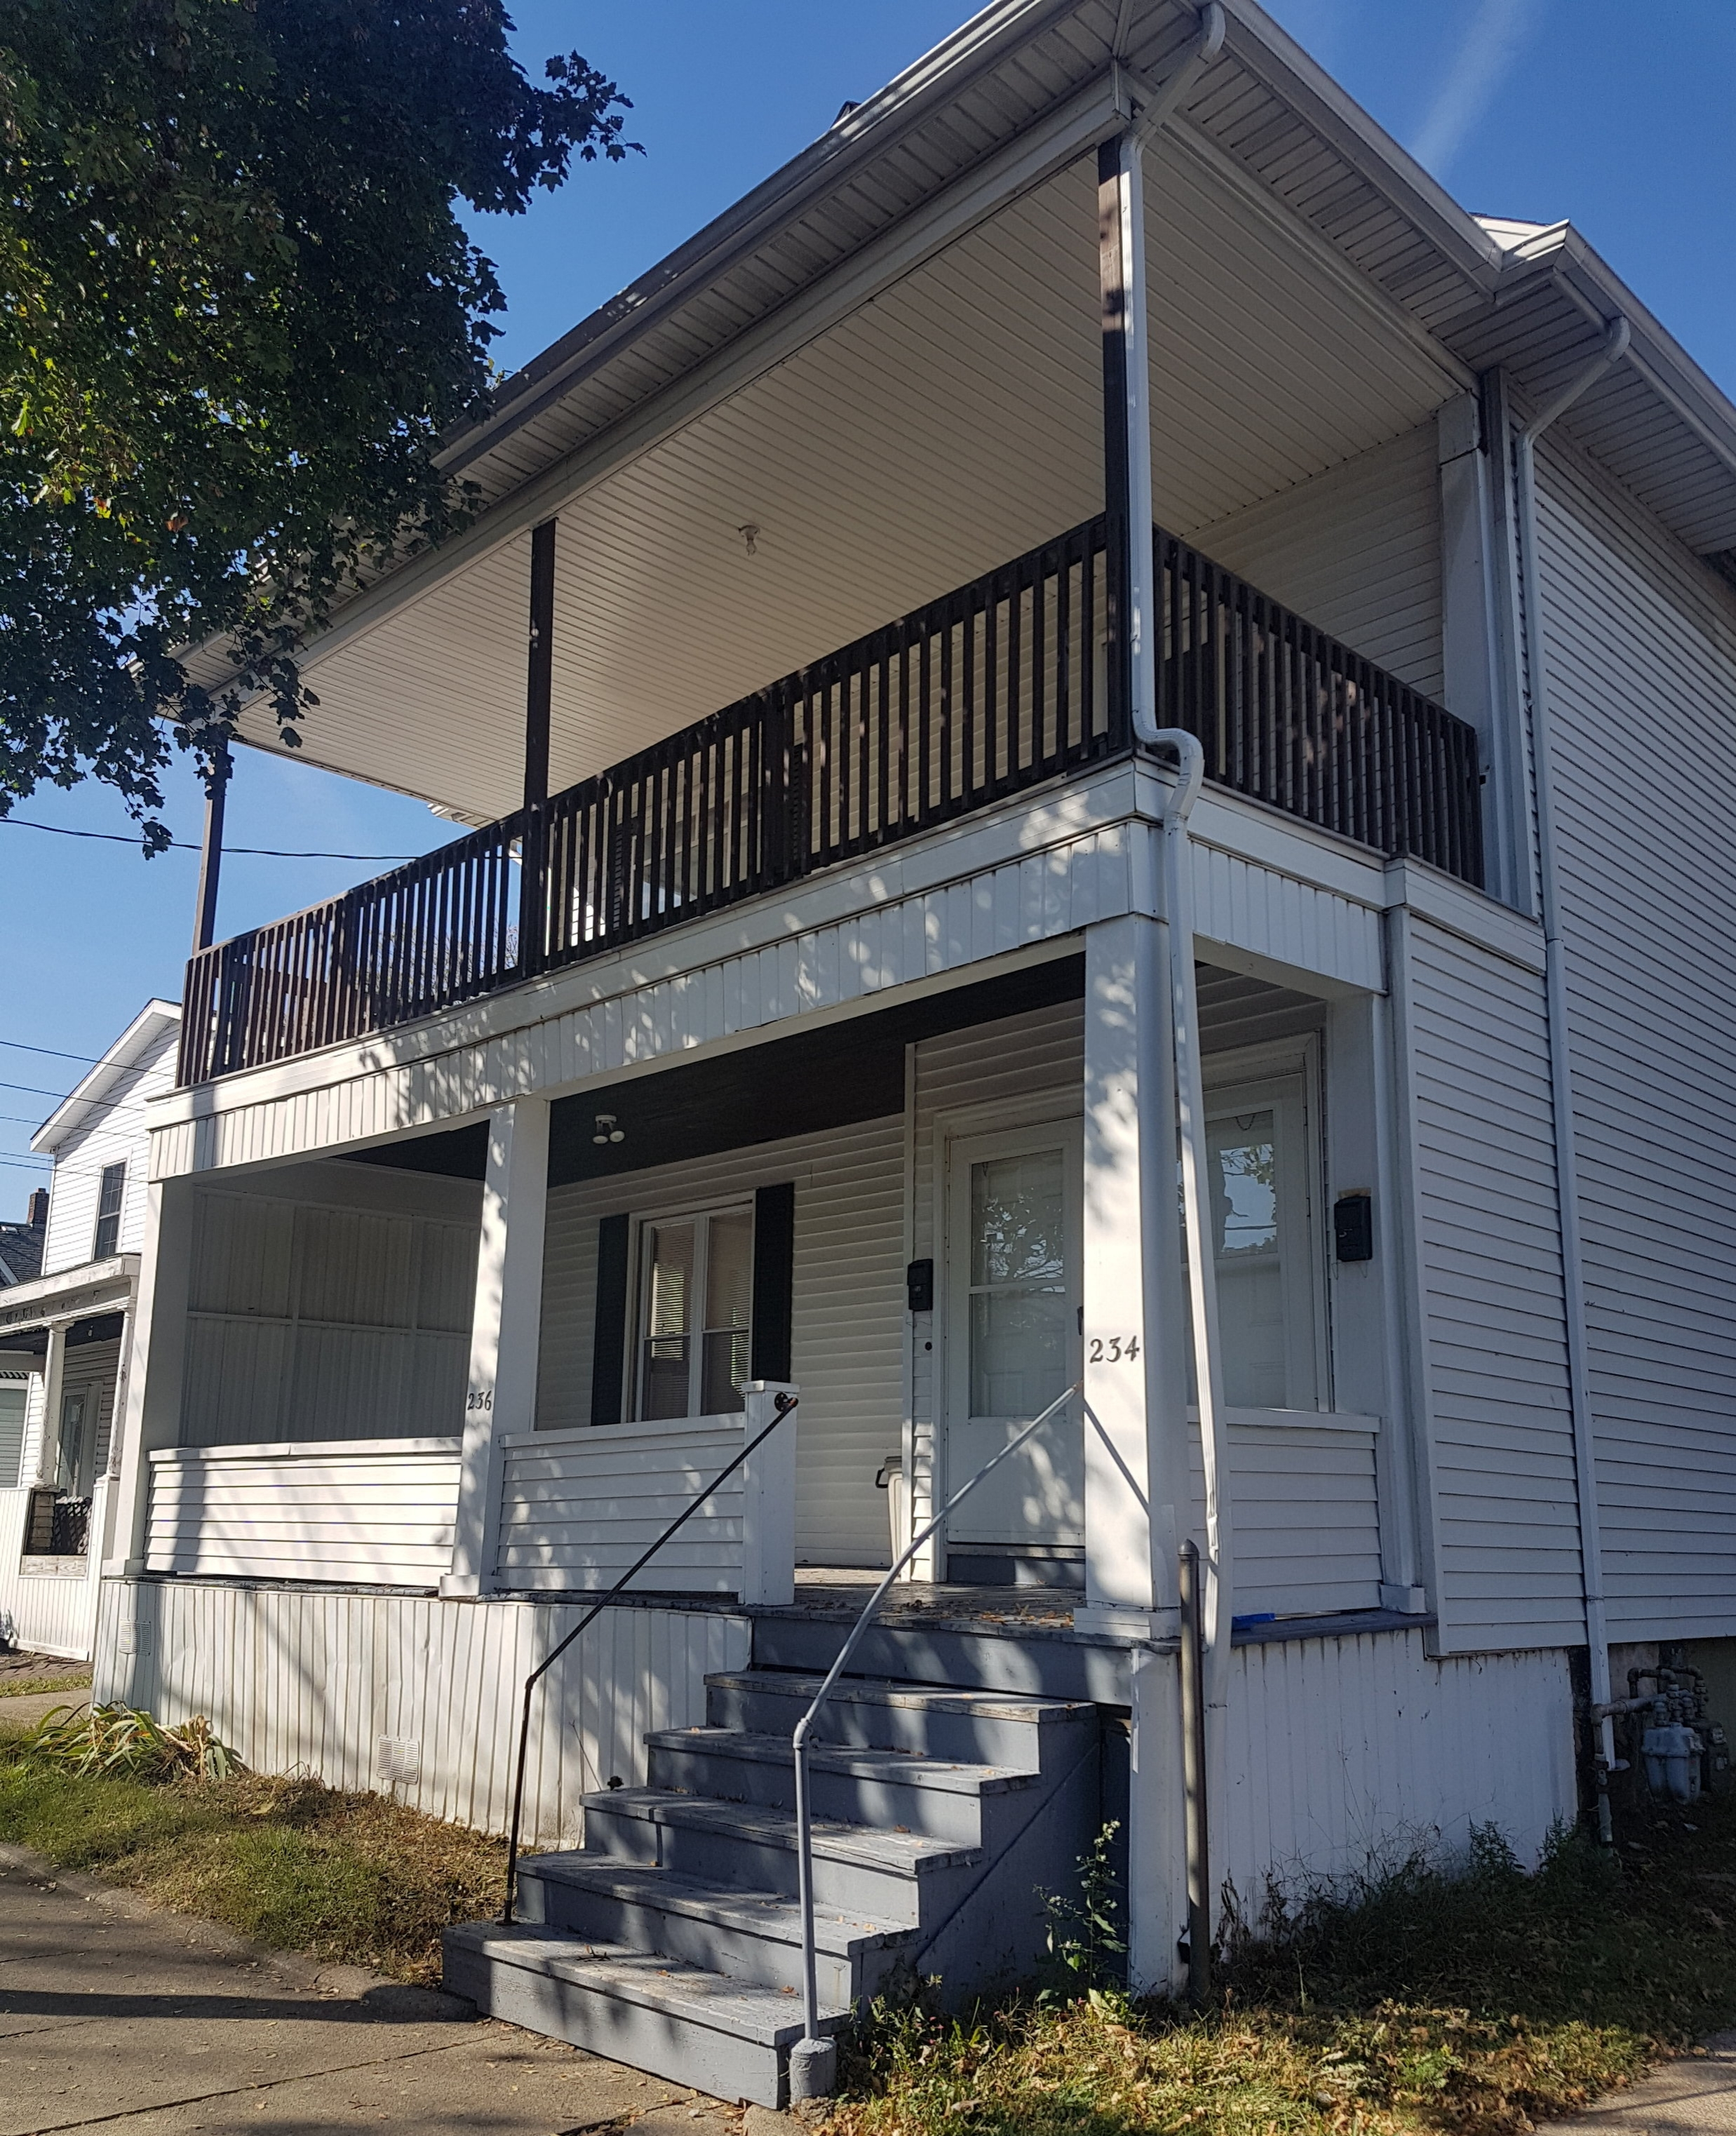 234W. 3rd Street - 234 West 3rd St. Erie Pa 16507This building offers two, three-bedroom apartments with large living room, dining room and kitchen in each unit. Off street parking and large accessible basement. One block walk to Gannon rec center.